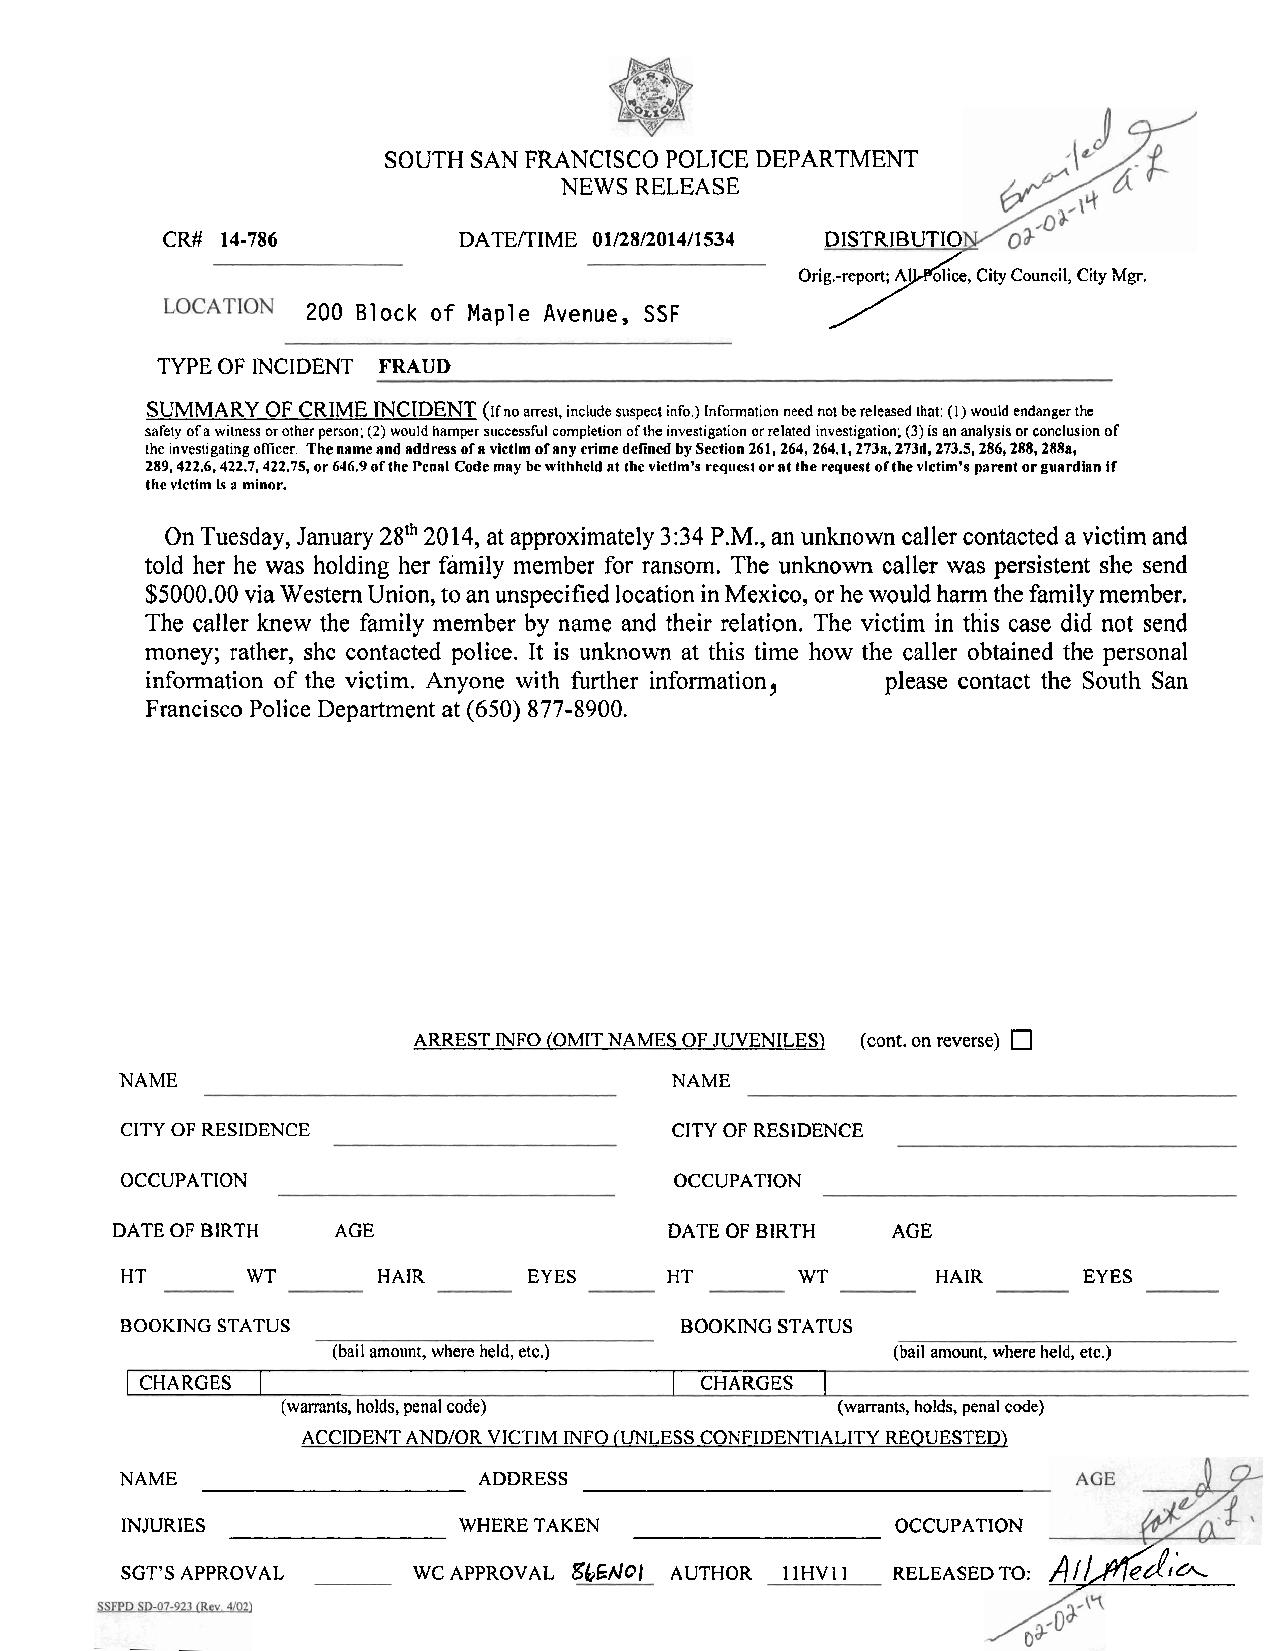 Ssfpd Media Release Fraud Threat Of Ransom Everything South City